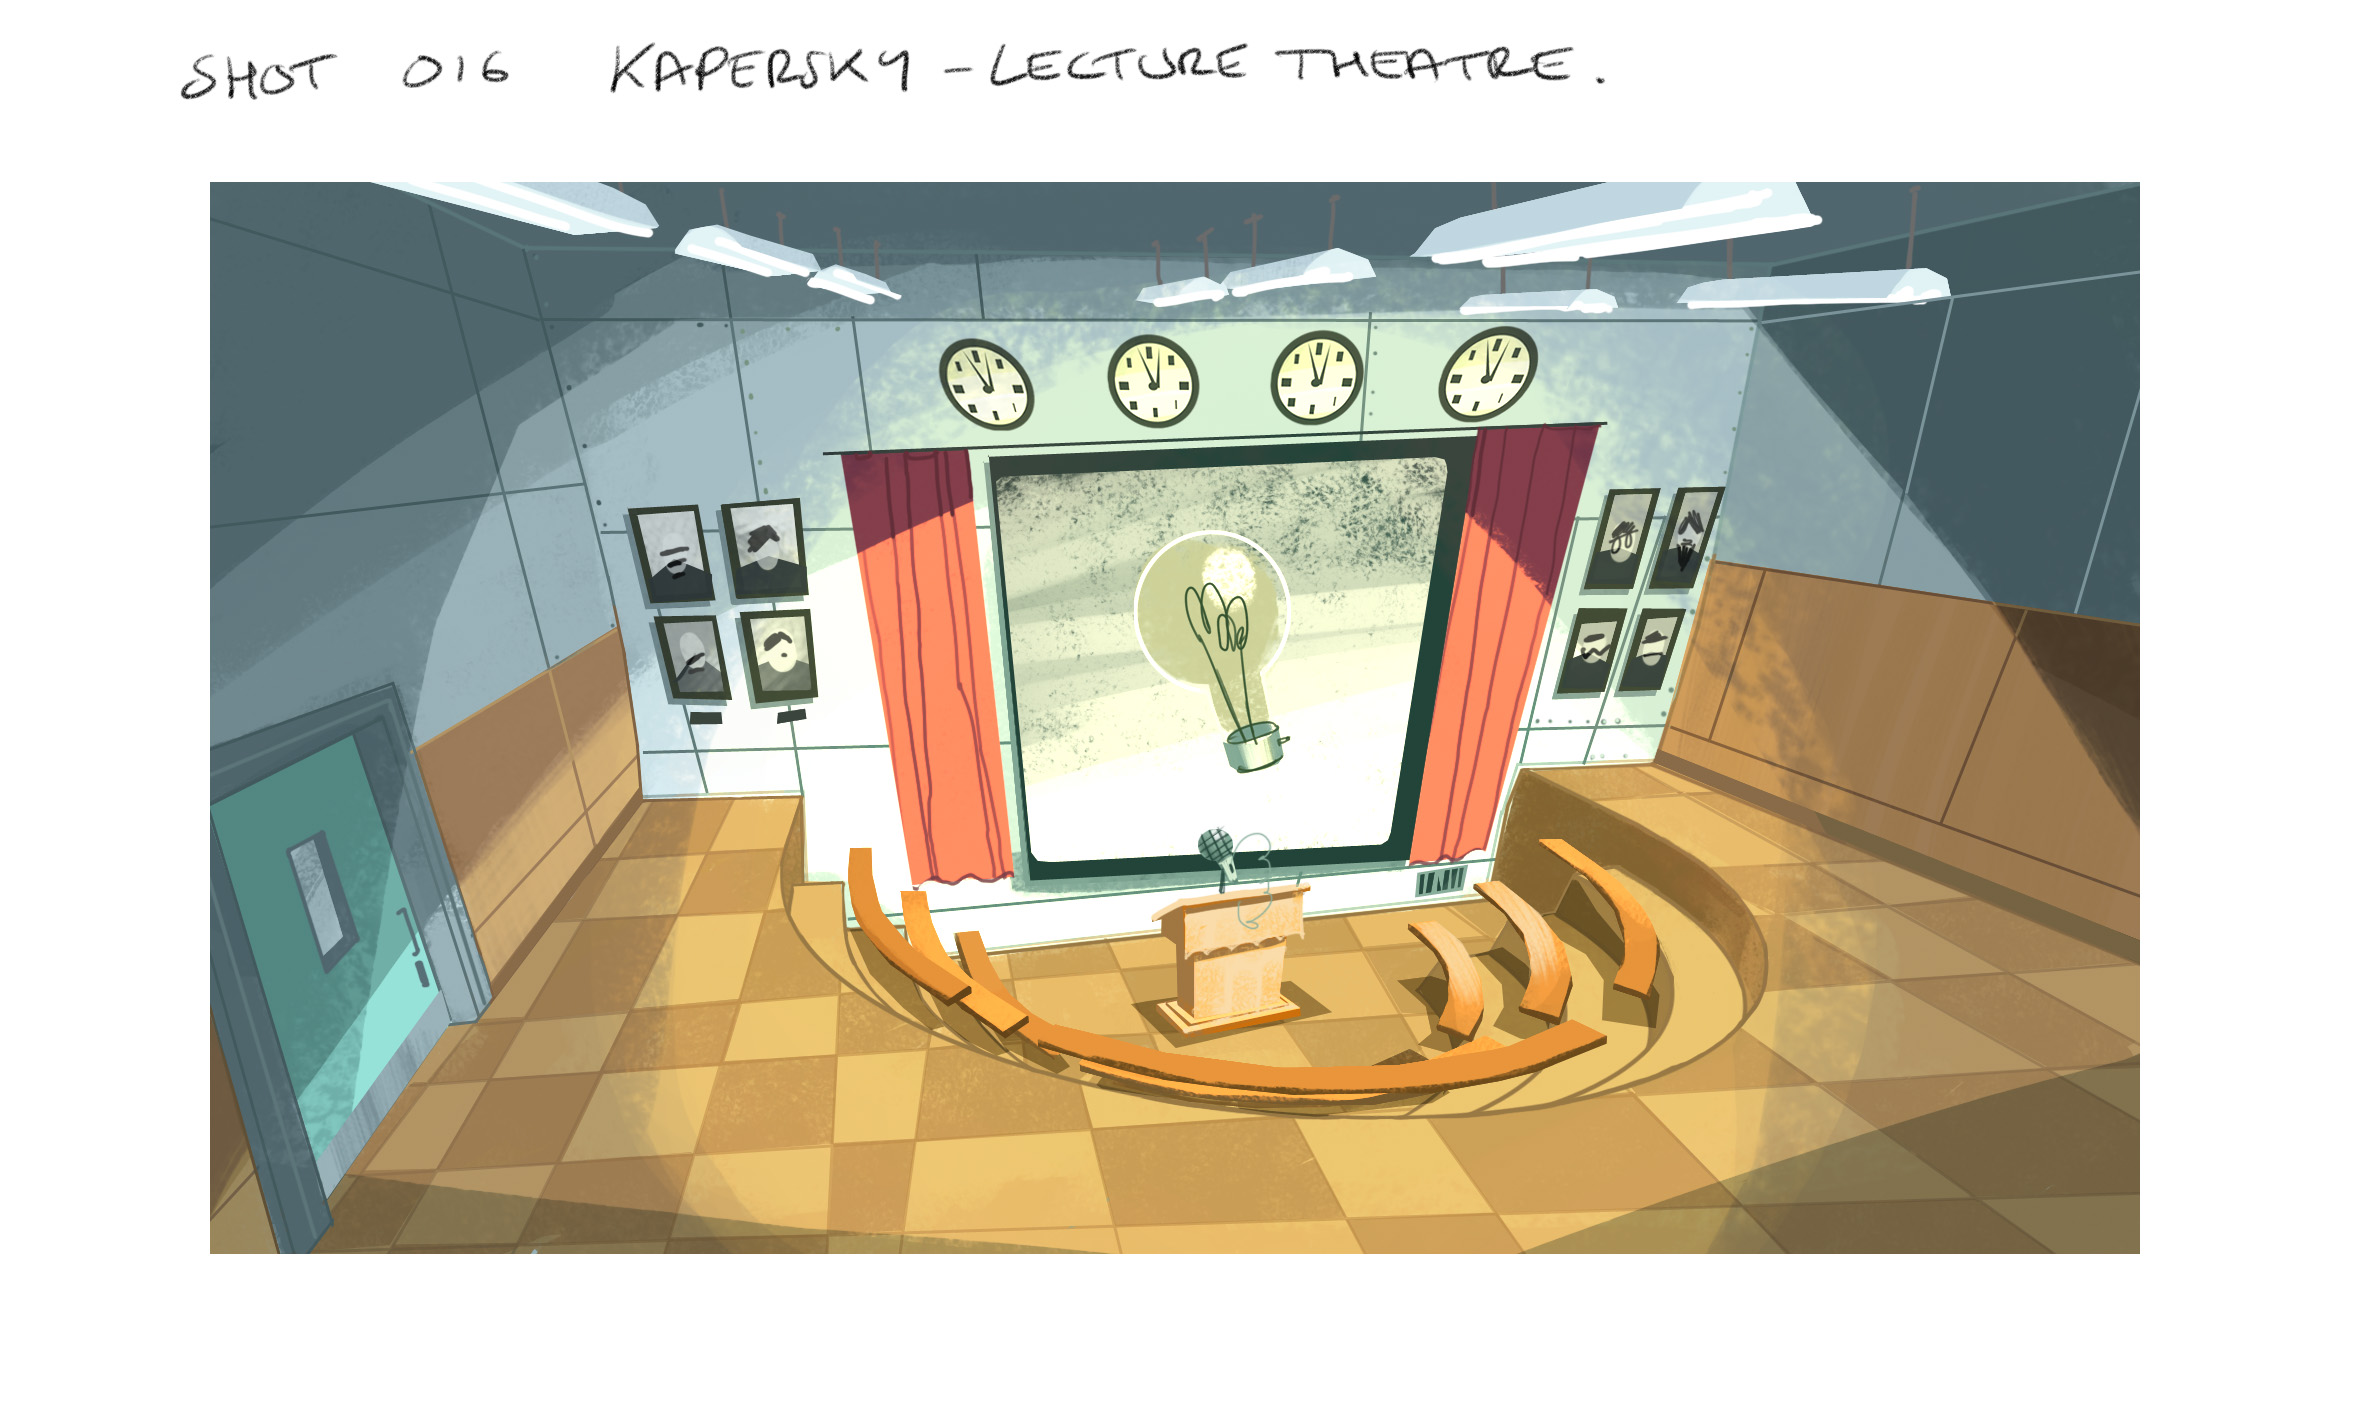 kapersky_theatre_ph.jpg